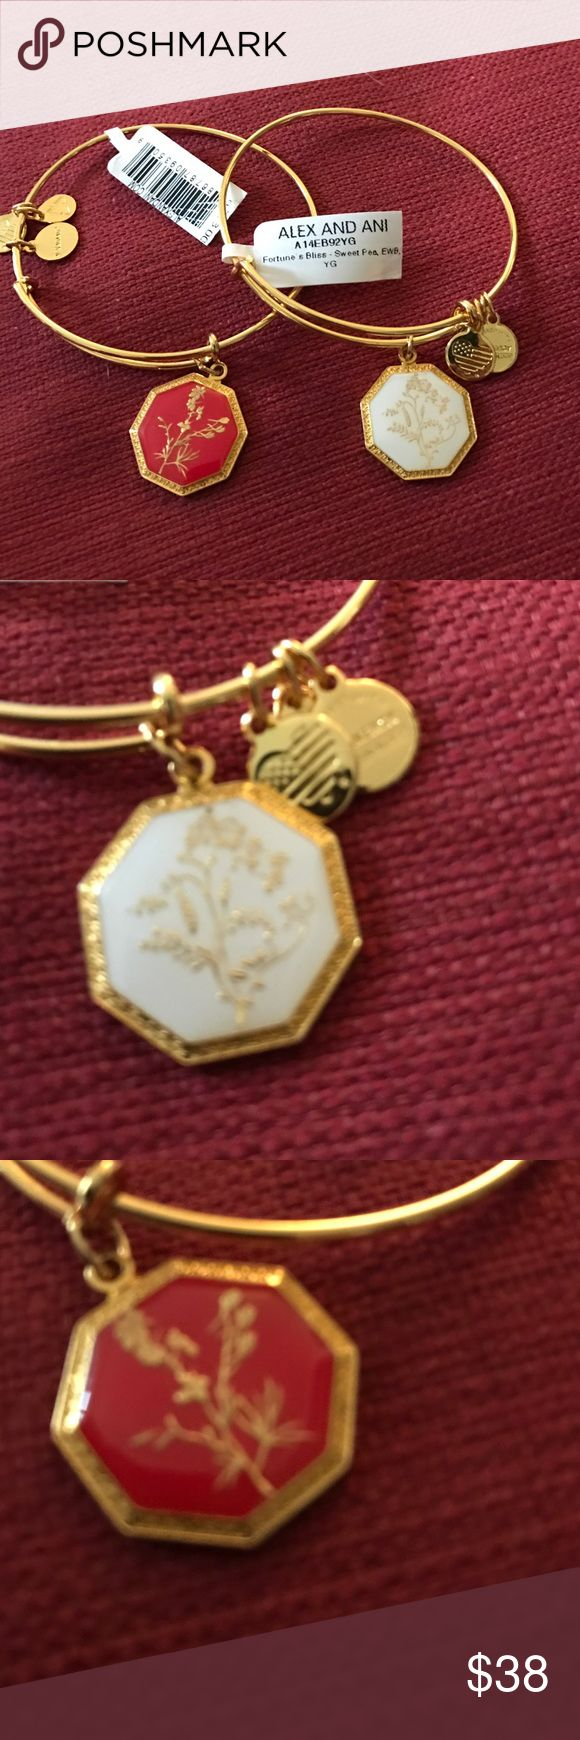 💕Rare💕 Alex and Ani bracelets Alex and Ani shiny gold red Larkspur and shiny gold and white Seeet Pea bracelet. Both new with retail tags Alex & Ani Jewelry Bracelets